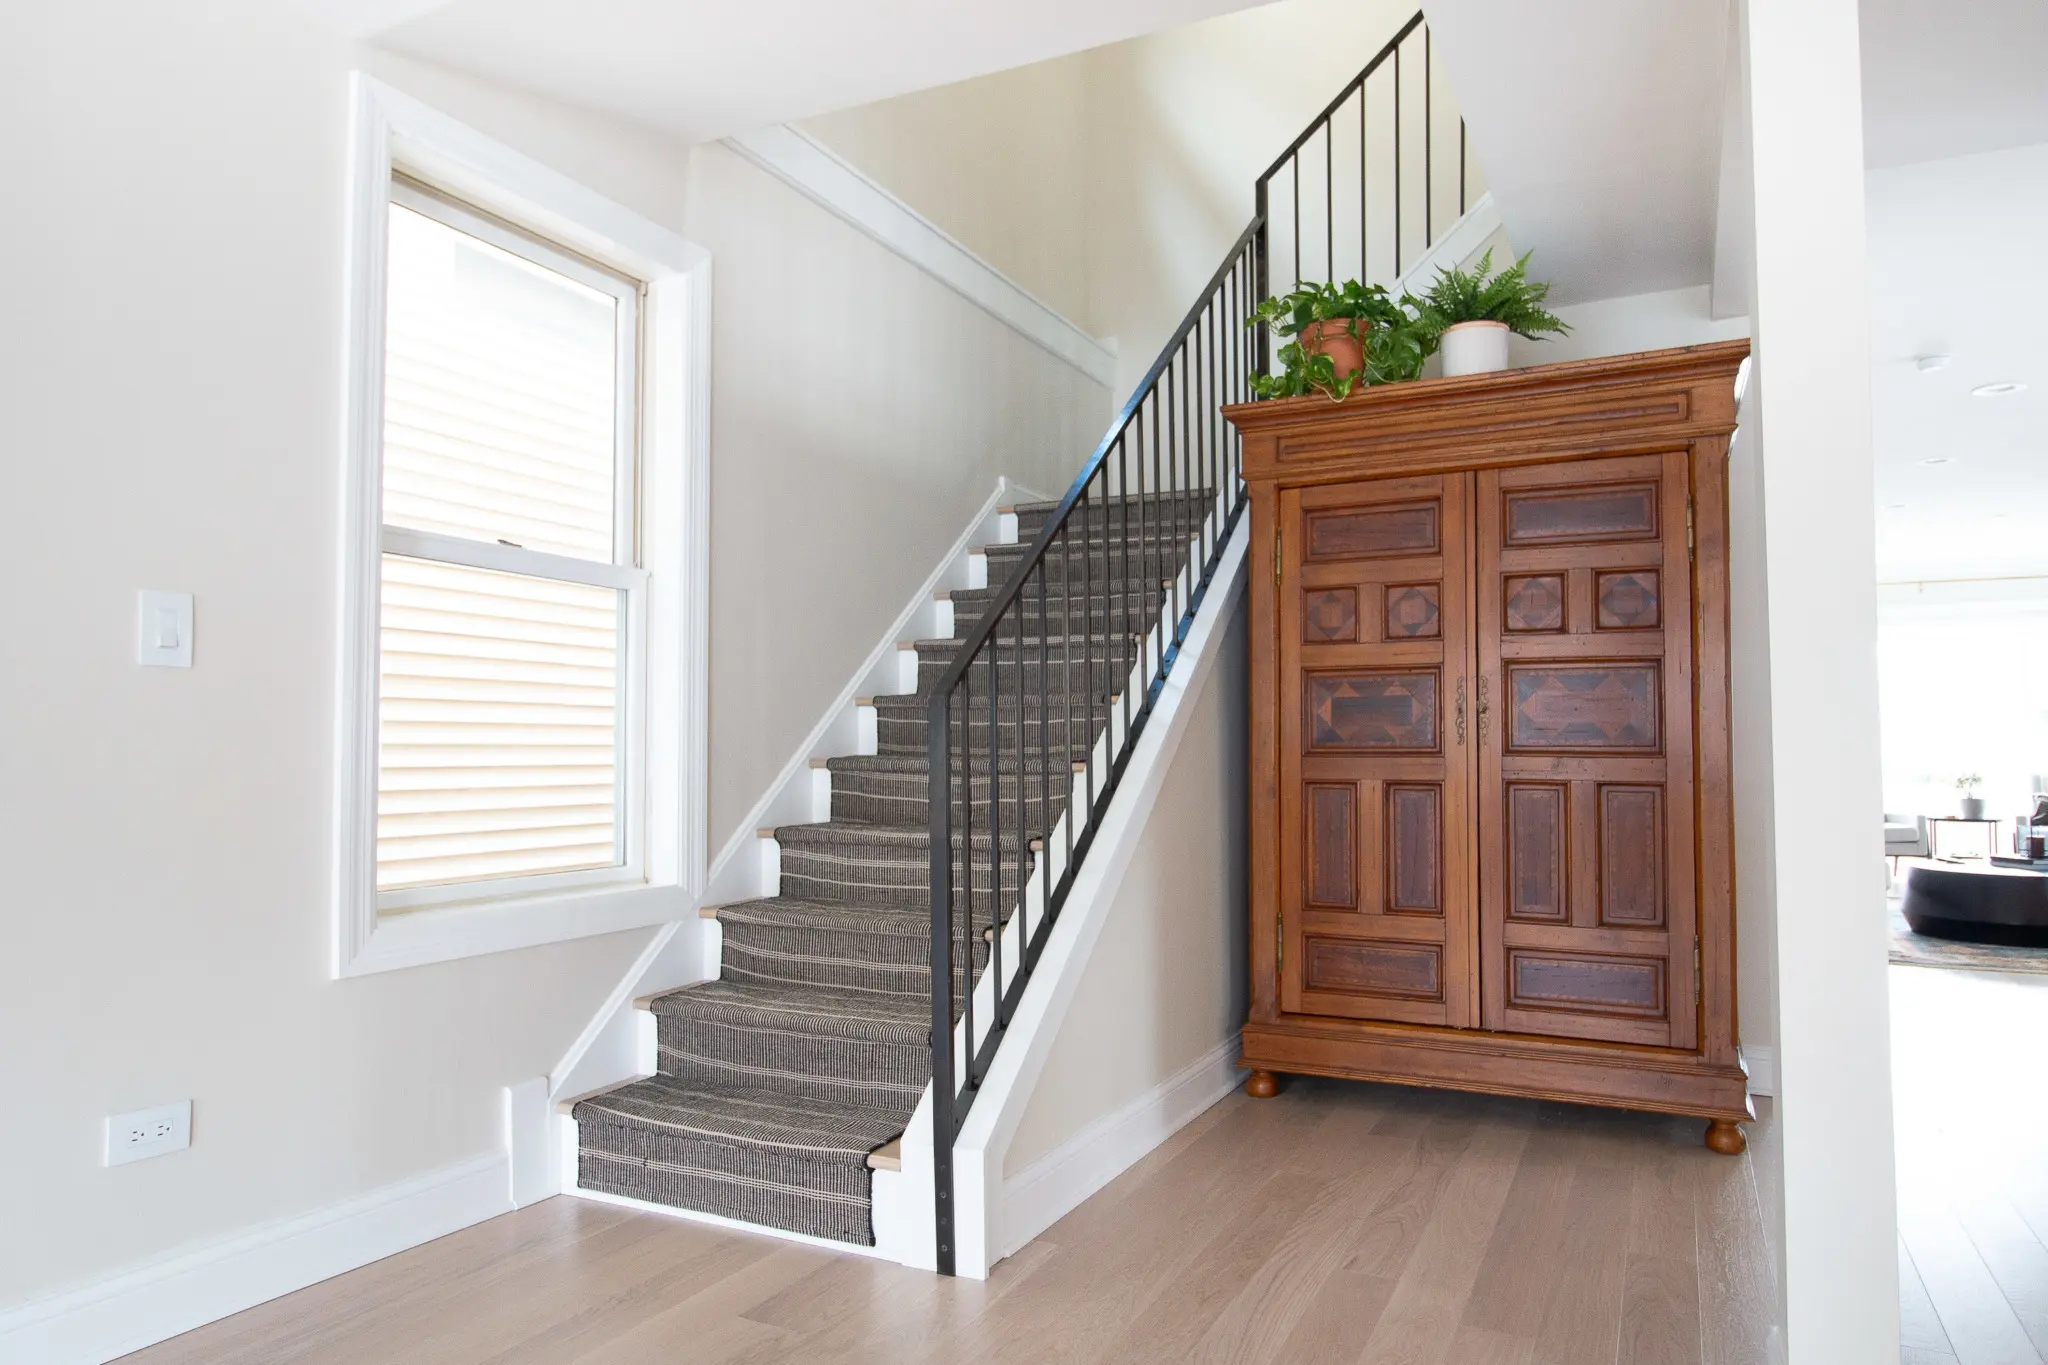 How To Install A Stair Runner On Hardwoods The Diy Playbook | End Of The Roll Stair Runners | Roger Oates | Staircase Makeover | Wall Carpet | Hallway Carpet | Stair Treads